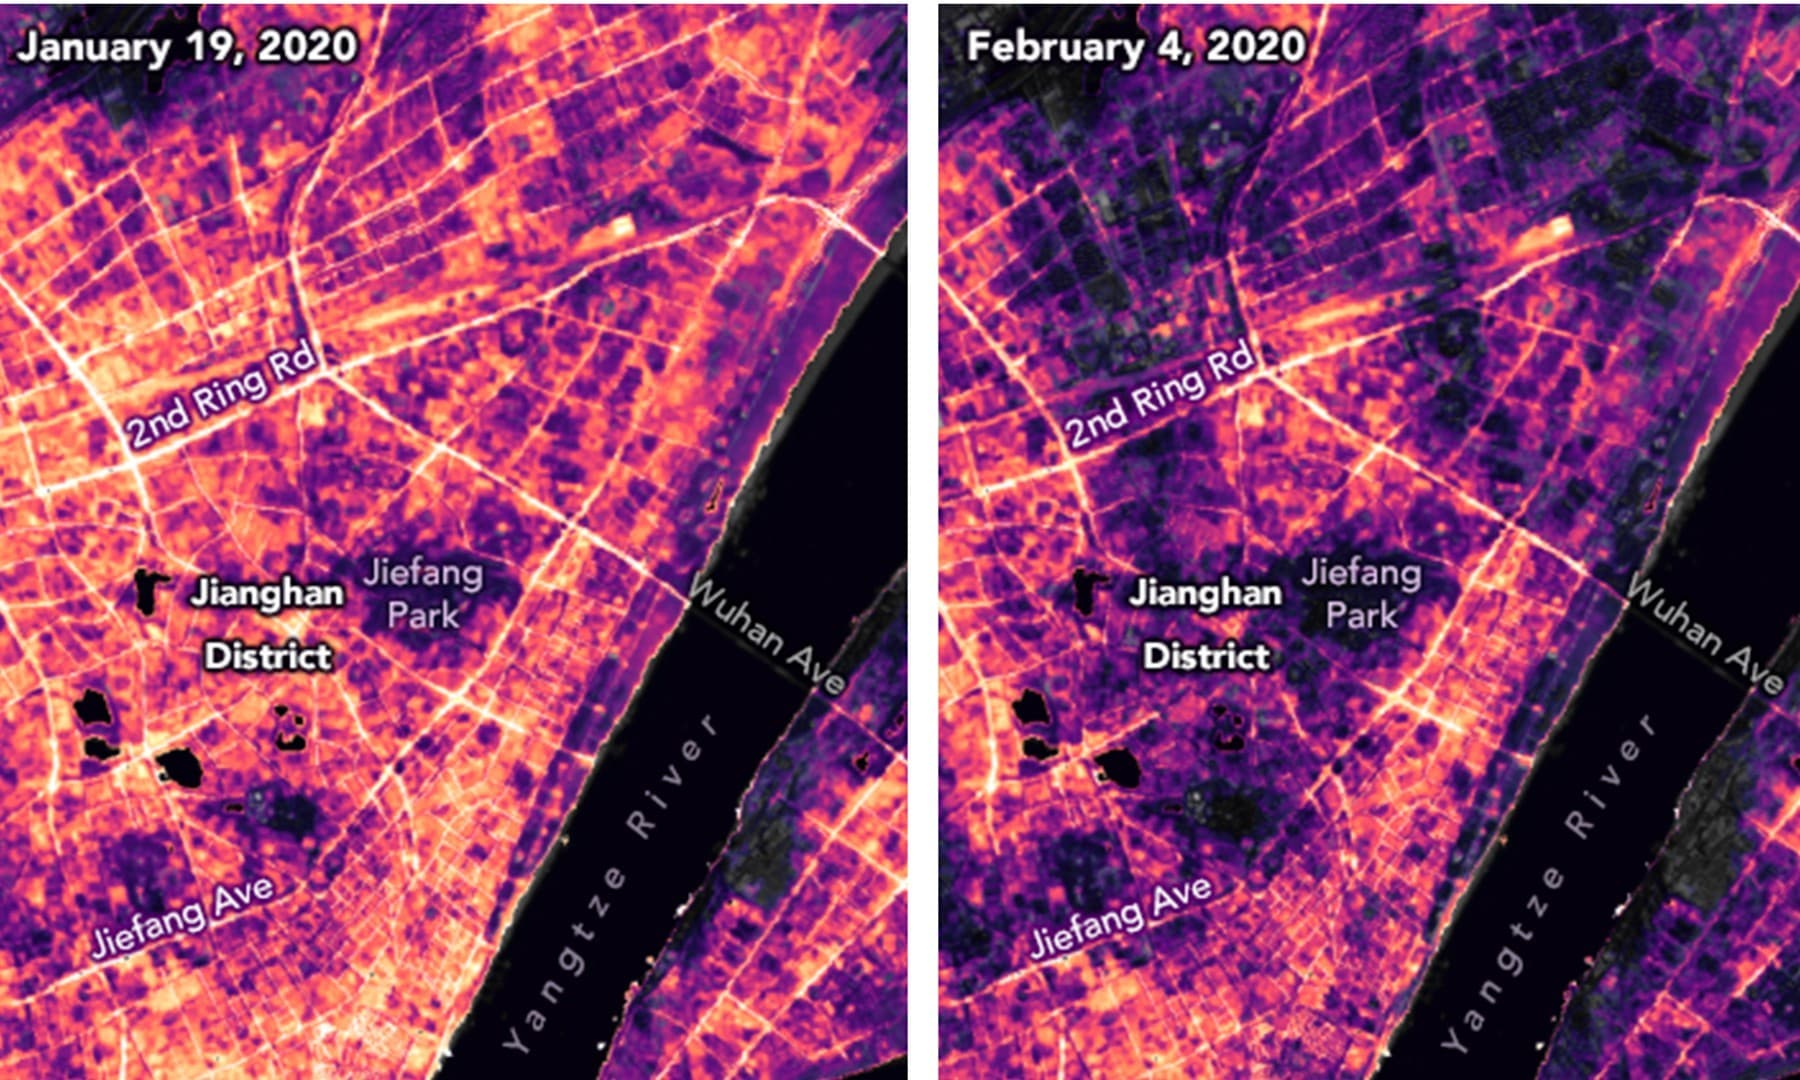 These satellite images made available by NASA show lighting changes in Jianghan District, a commercial area of Wuhan, China and nearby residential areas on January 19 before the Covid-19 quarantine and February 4, 2020, during the quarantine. — AP